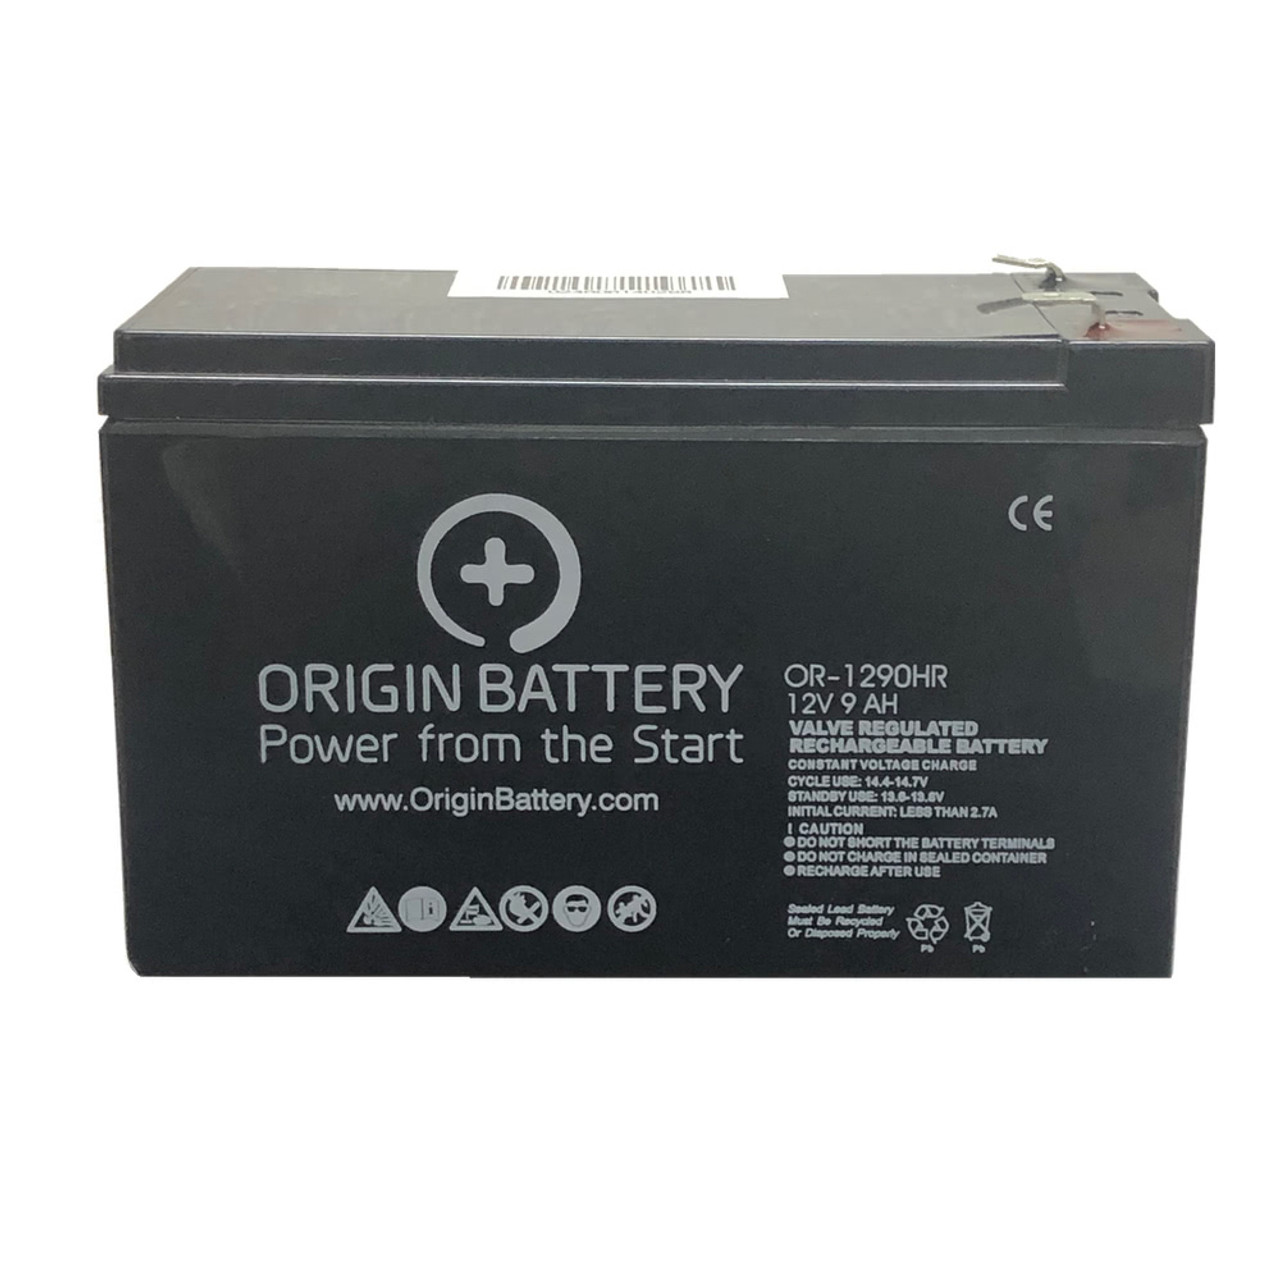 [FPWZ_2684]  APC BN575G Battery Replacement Kit | Apc Rbc43 Wiring Diagram |  | High-Tech Battery Solutions Inc